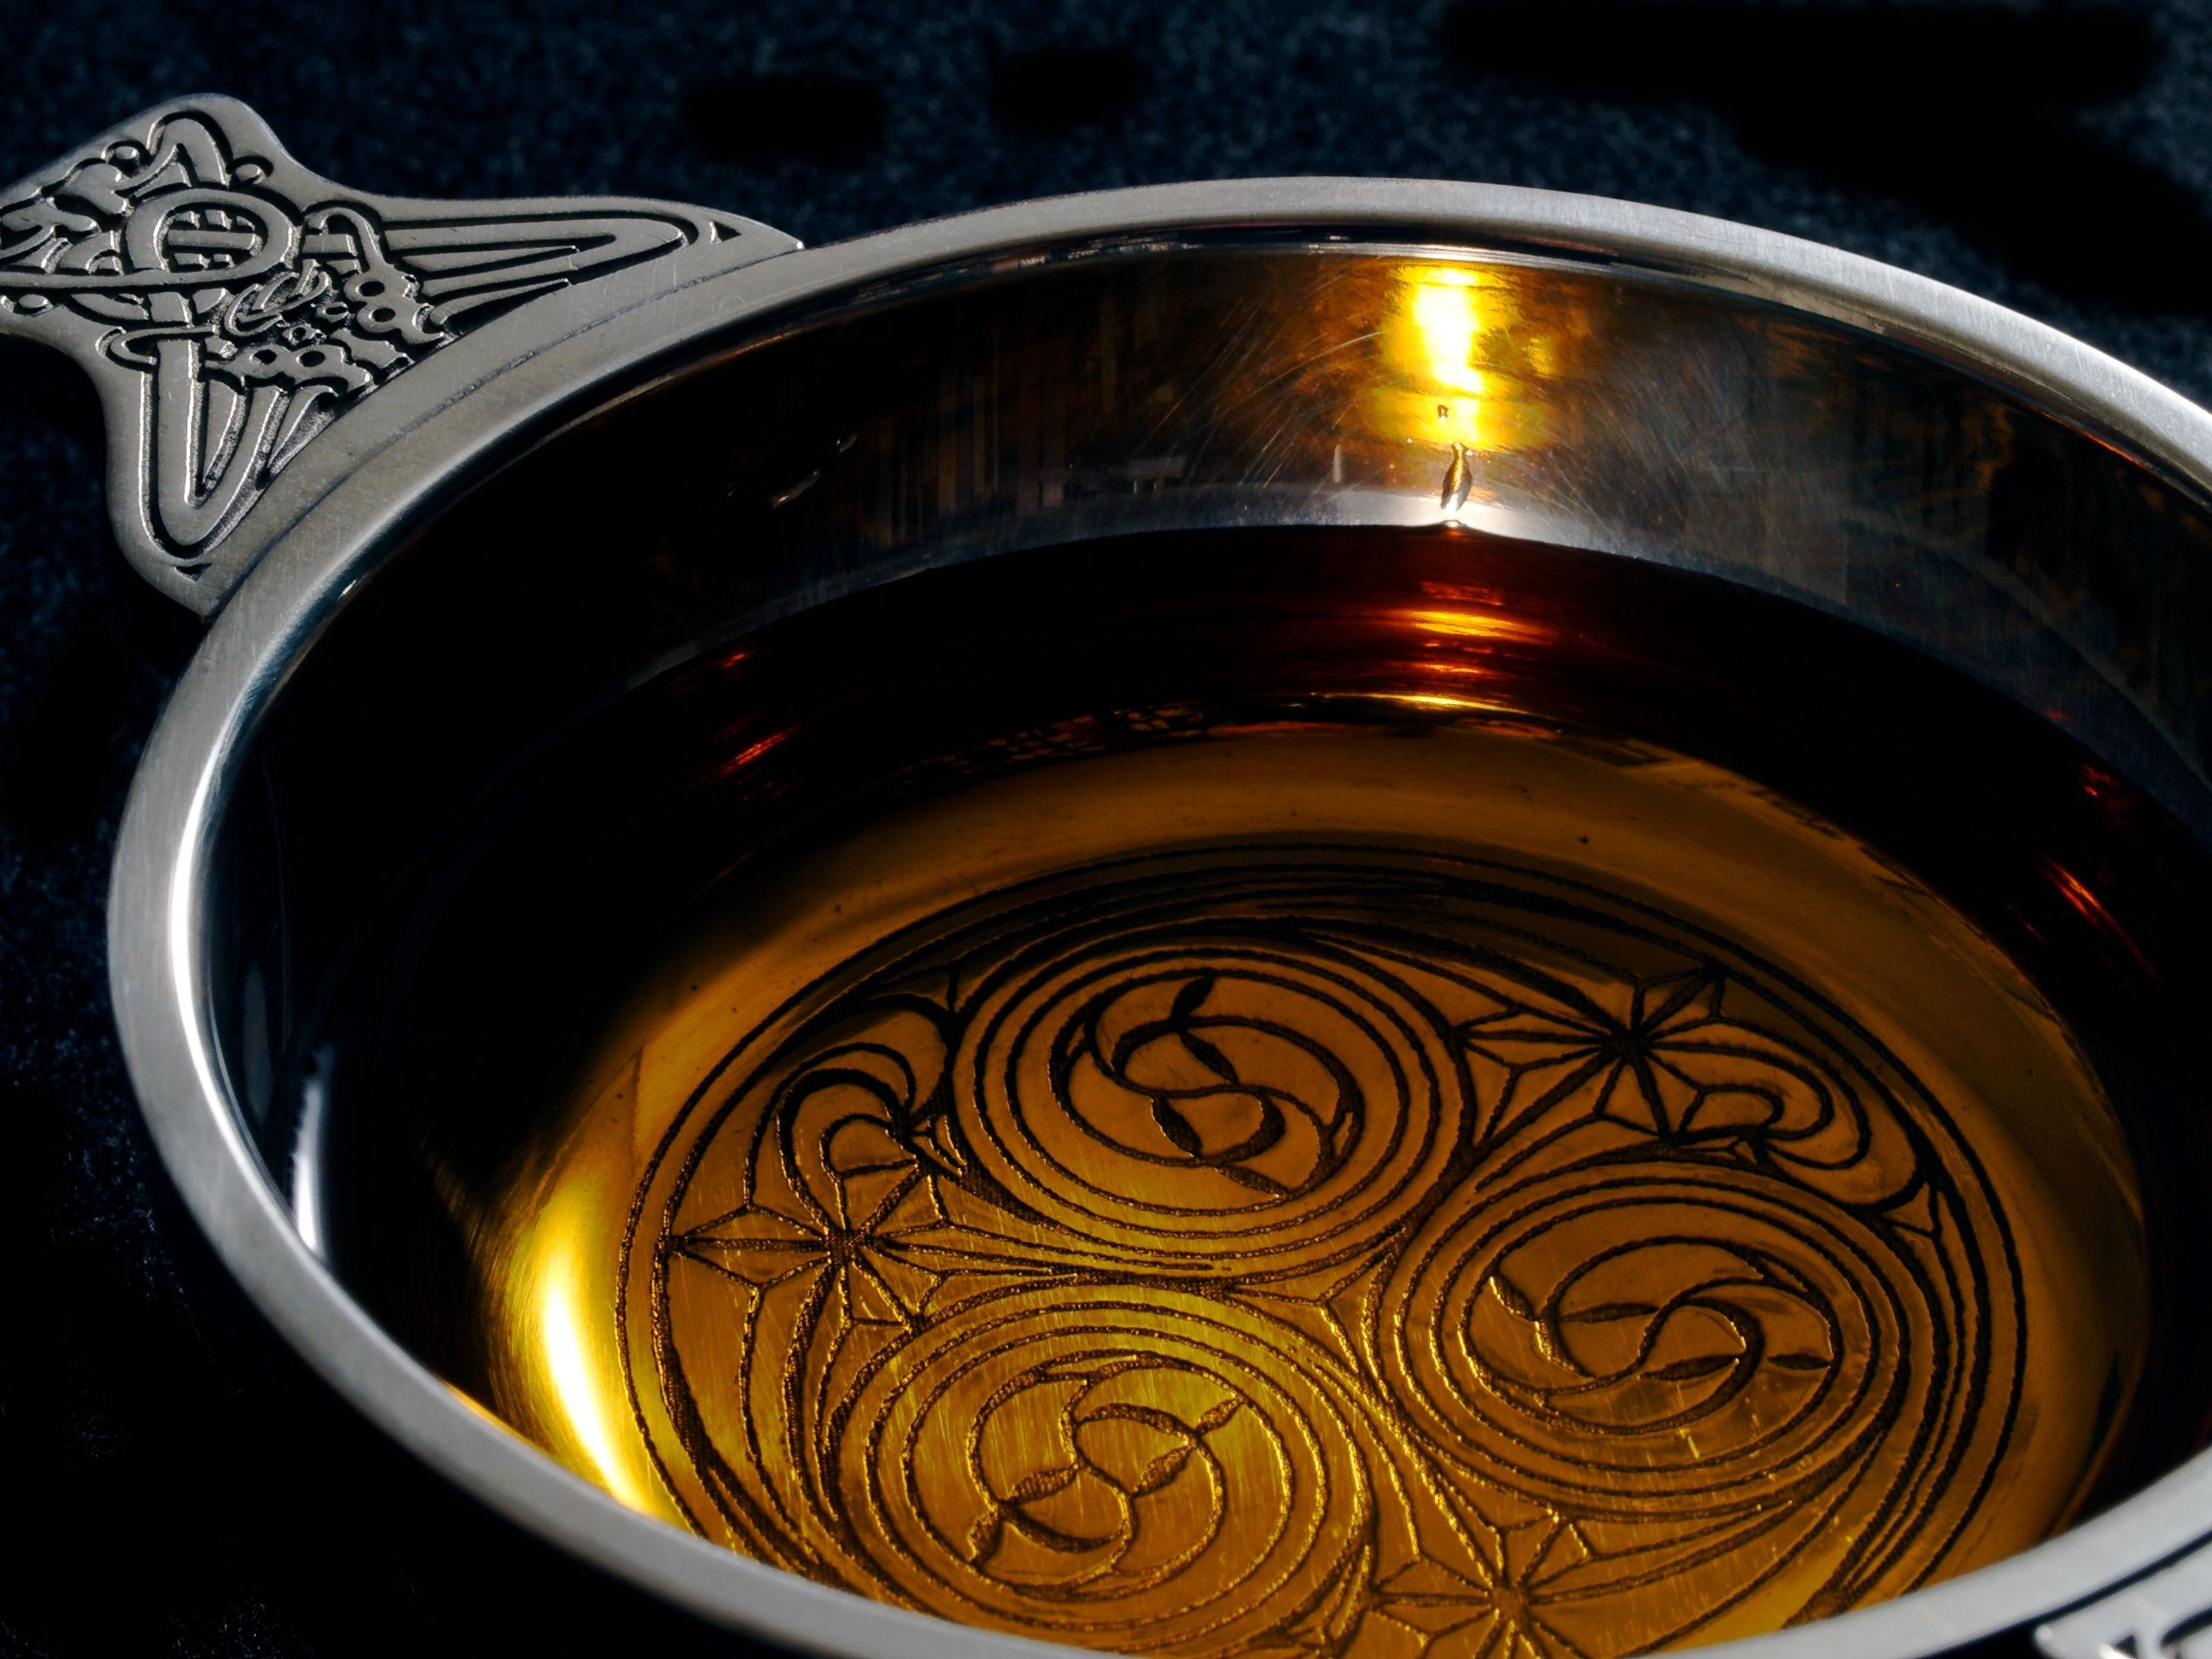 A traditional Scottish cup, a quaich, with a dram of single malt whiskey.